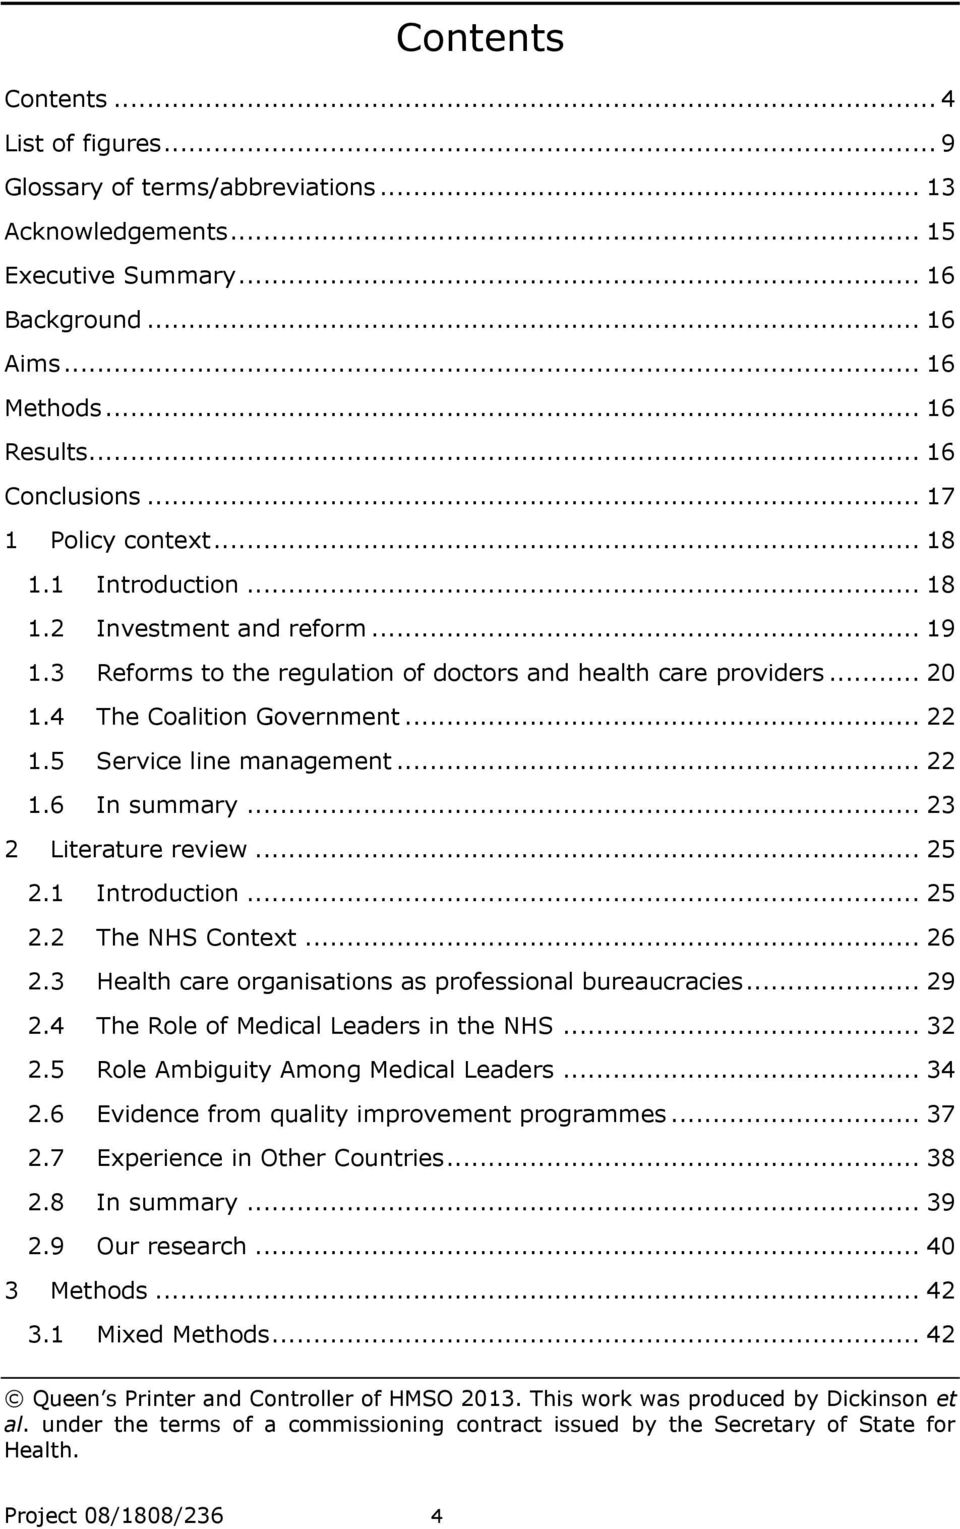 5 Service line management... 22 1.6 In summary... 23 2 Literature review... 25 2.1 Introduction... 25 2.2 The NHS Context... 26 2.3 Health care organisations as professional bureaucracies... 29 2.